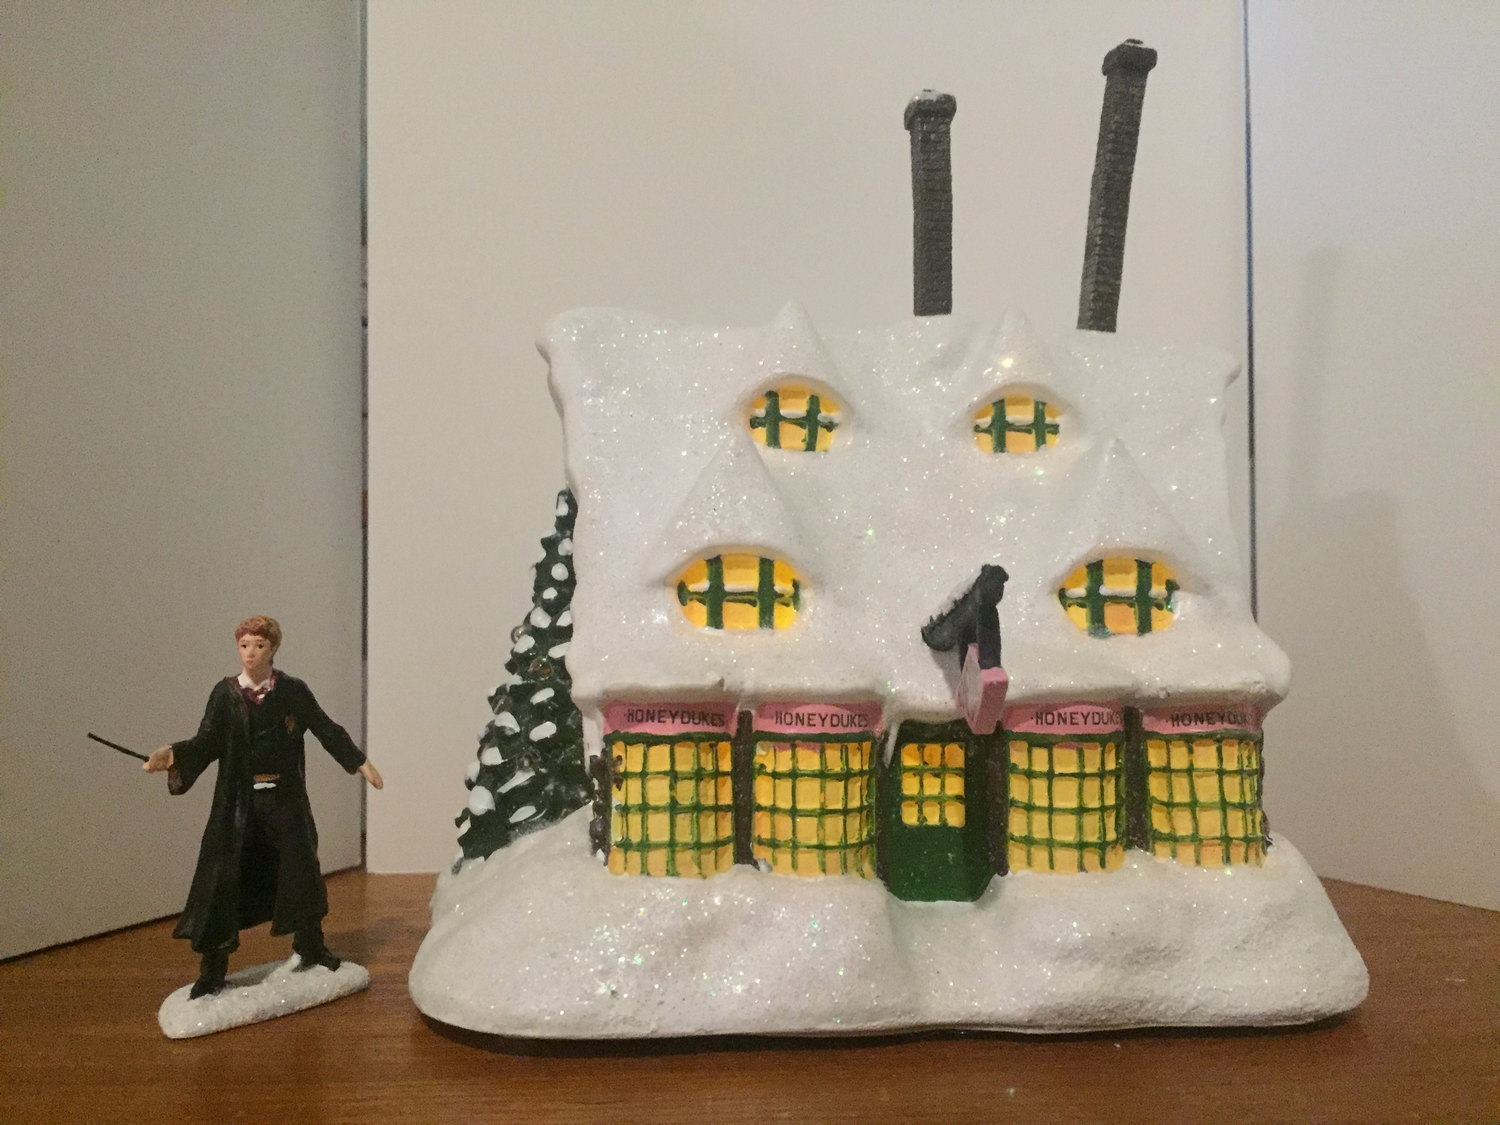 """HONEYDUKES™"" Sweet Shop and ""RON WEASLEY™"", front view"